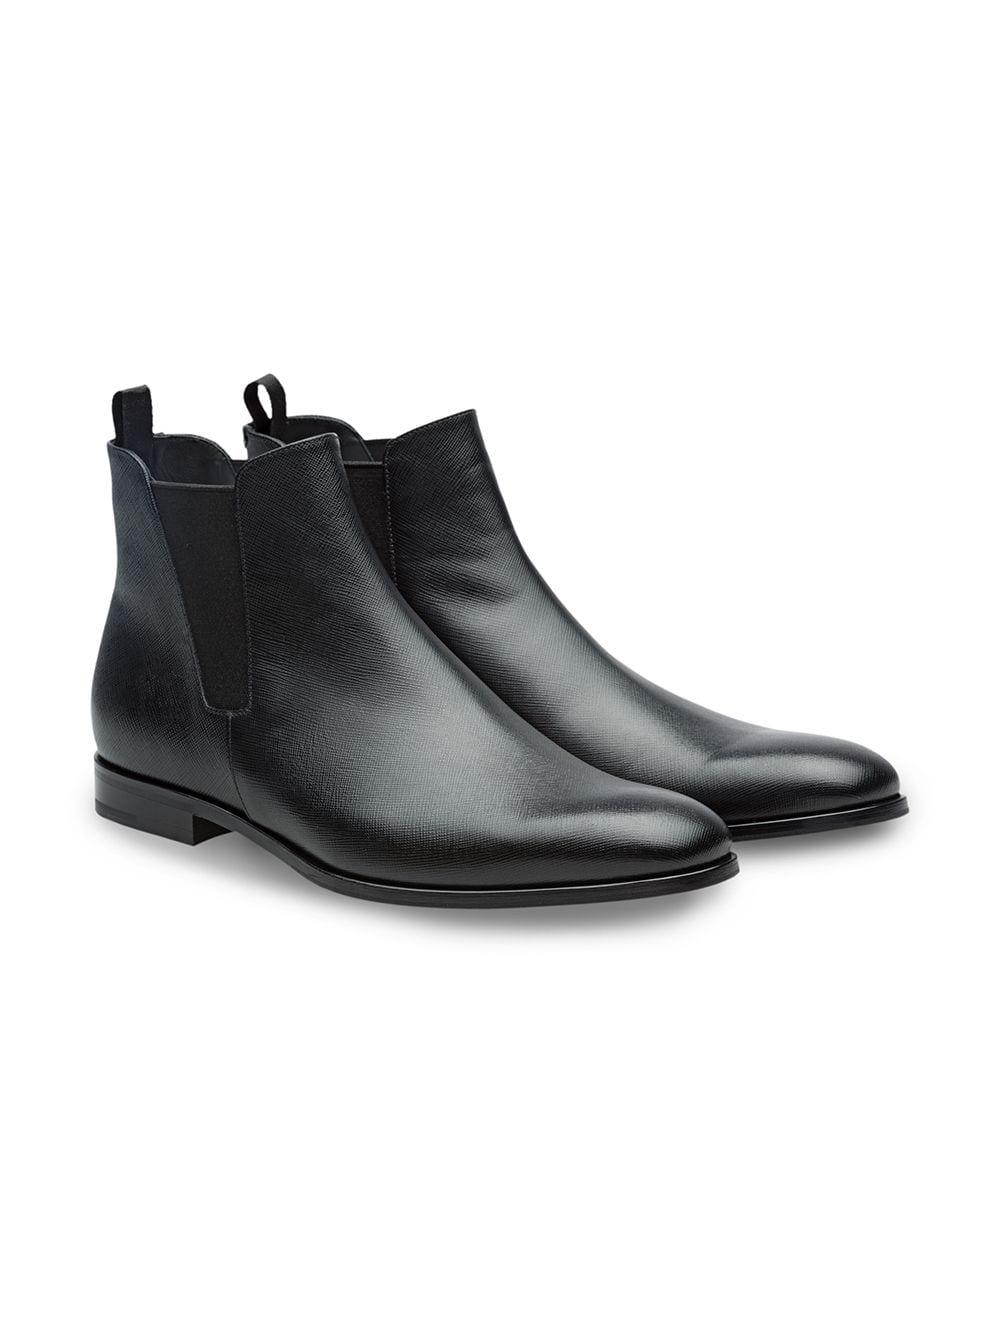 a46f15fc8661 Lyst - Prada Saffiano Leather Chelsea Boots in Black for Men